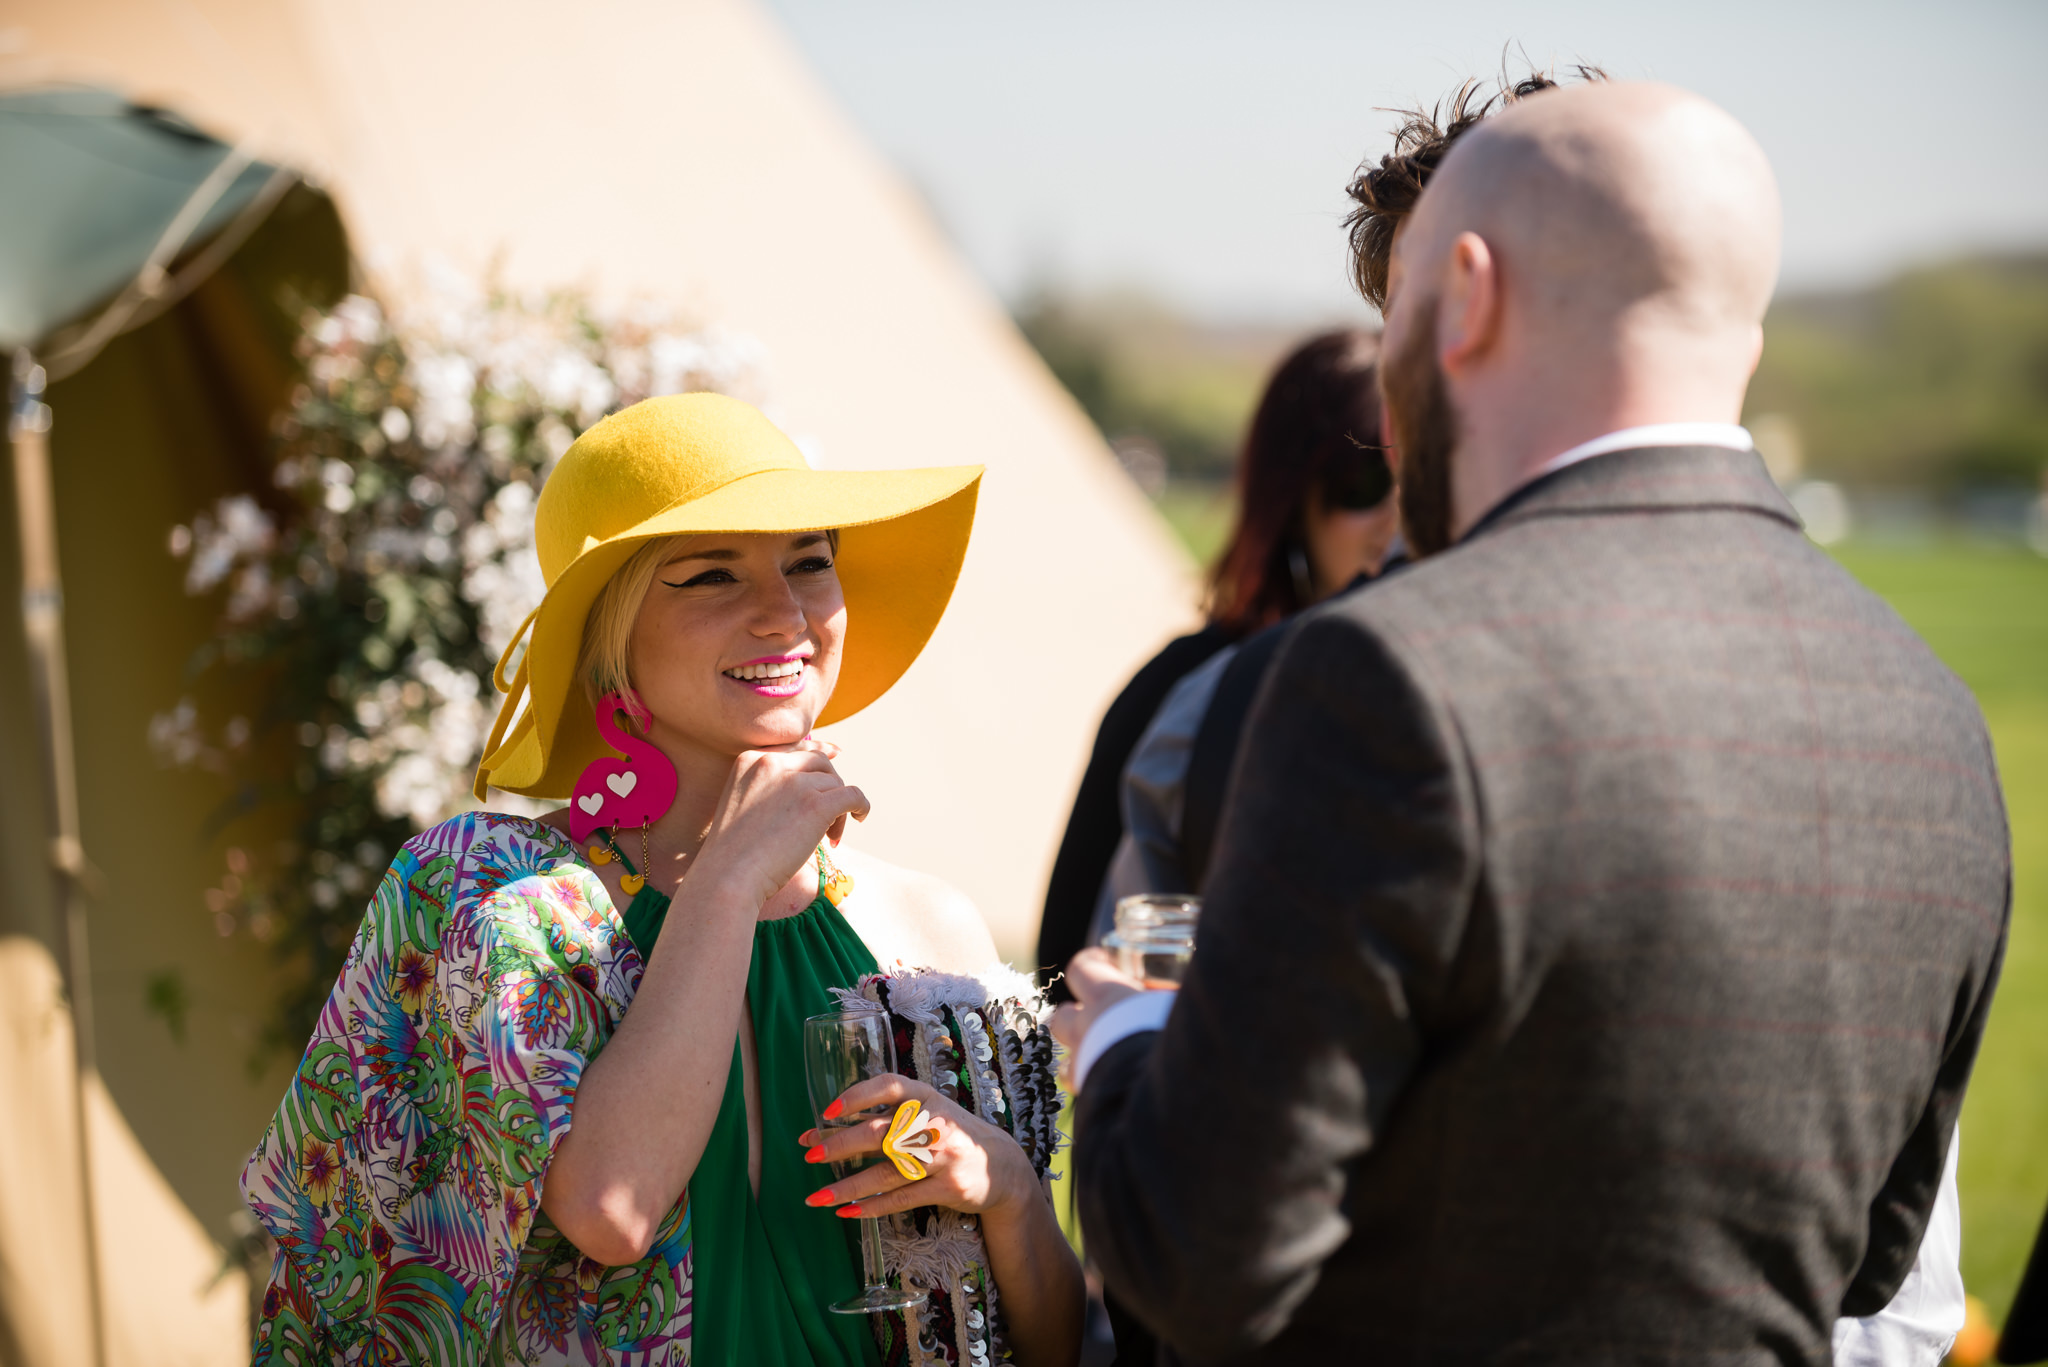 Wedding guests talking with each other outside the teepee